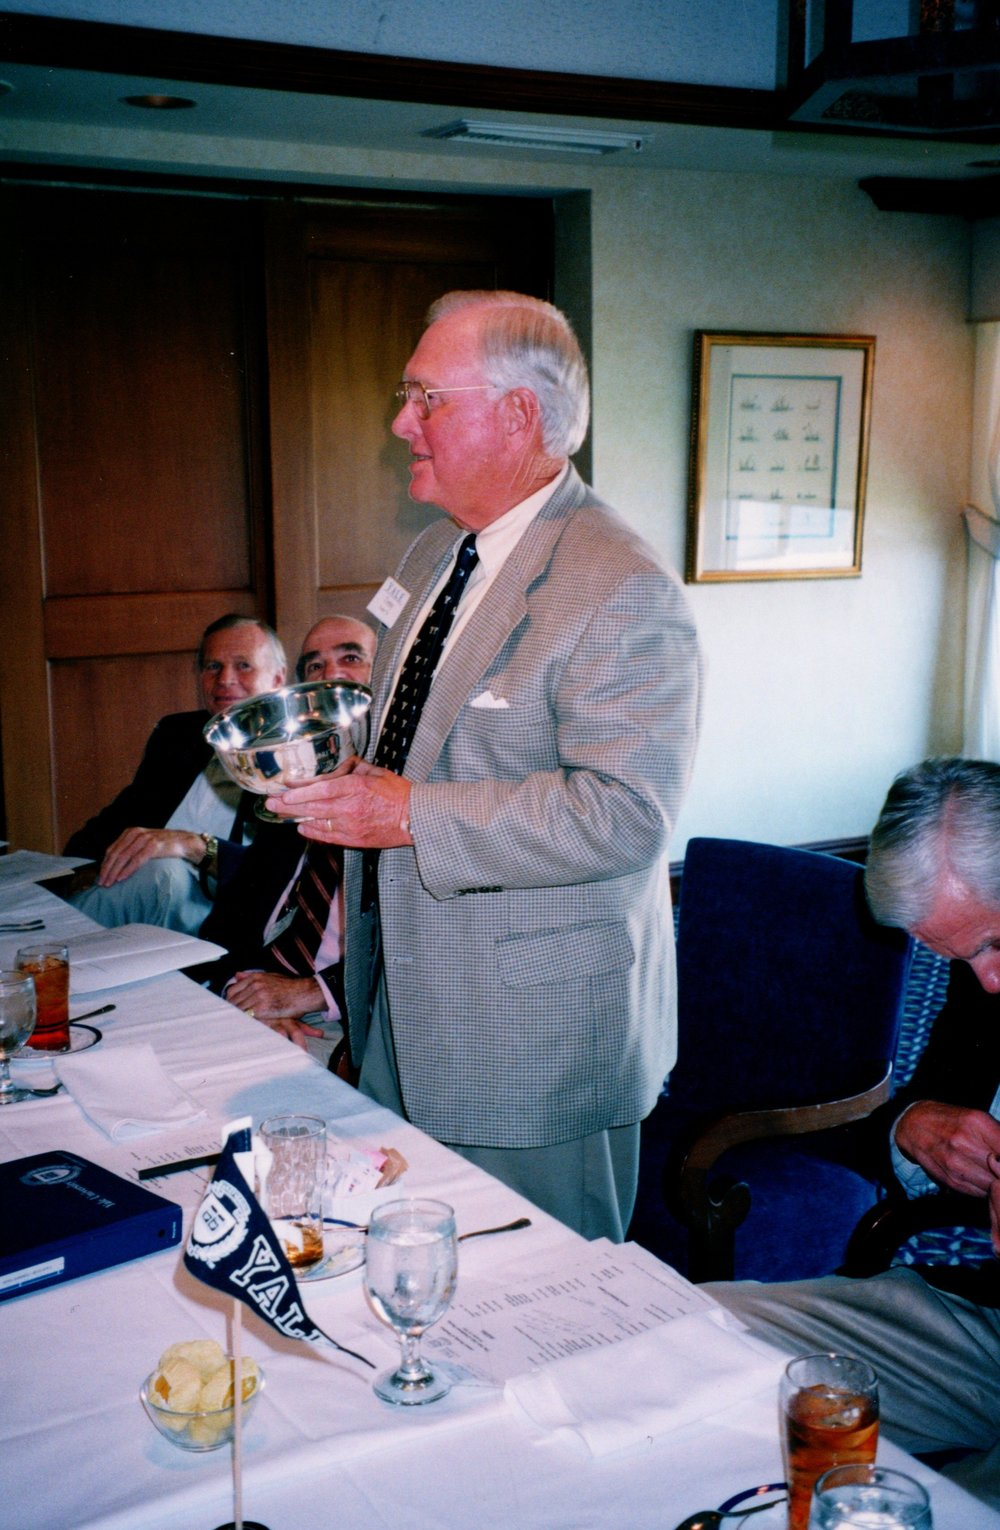 11_13_2003 - ANNUAL MEETING OF MEMBERS 9.jpg